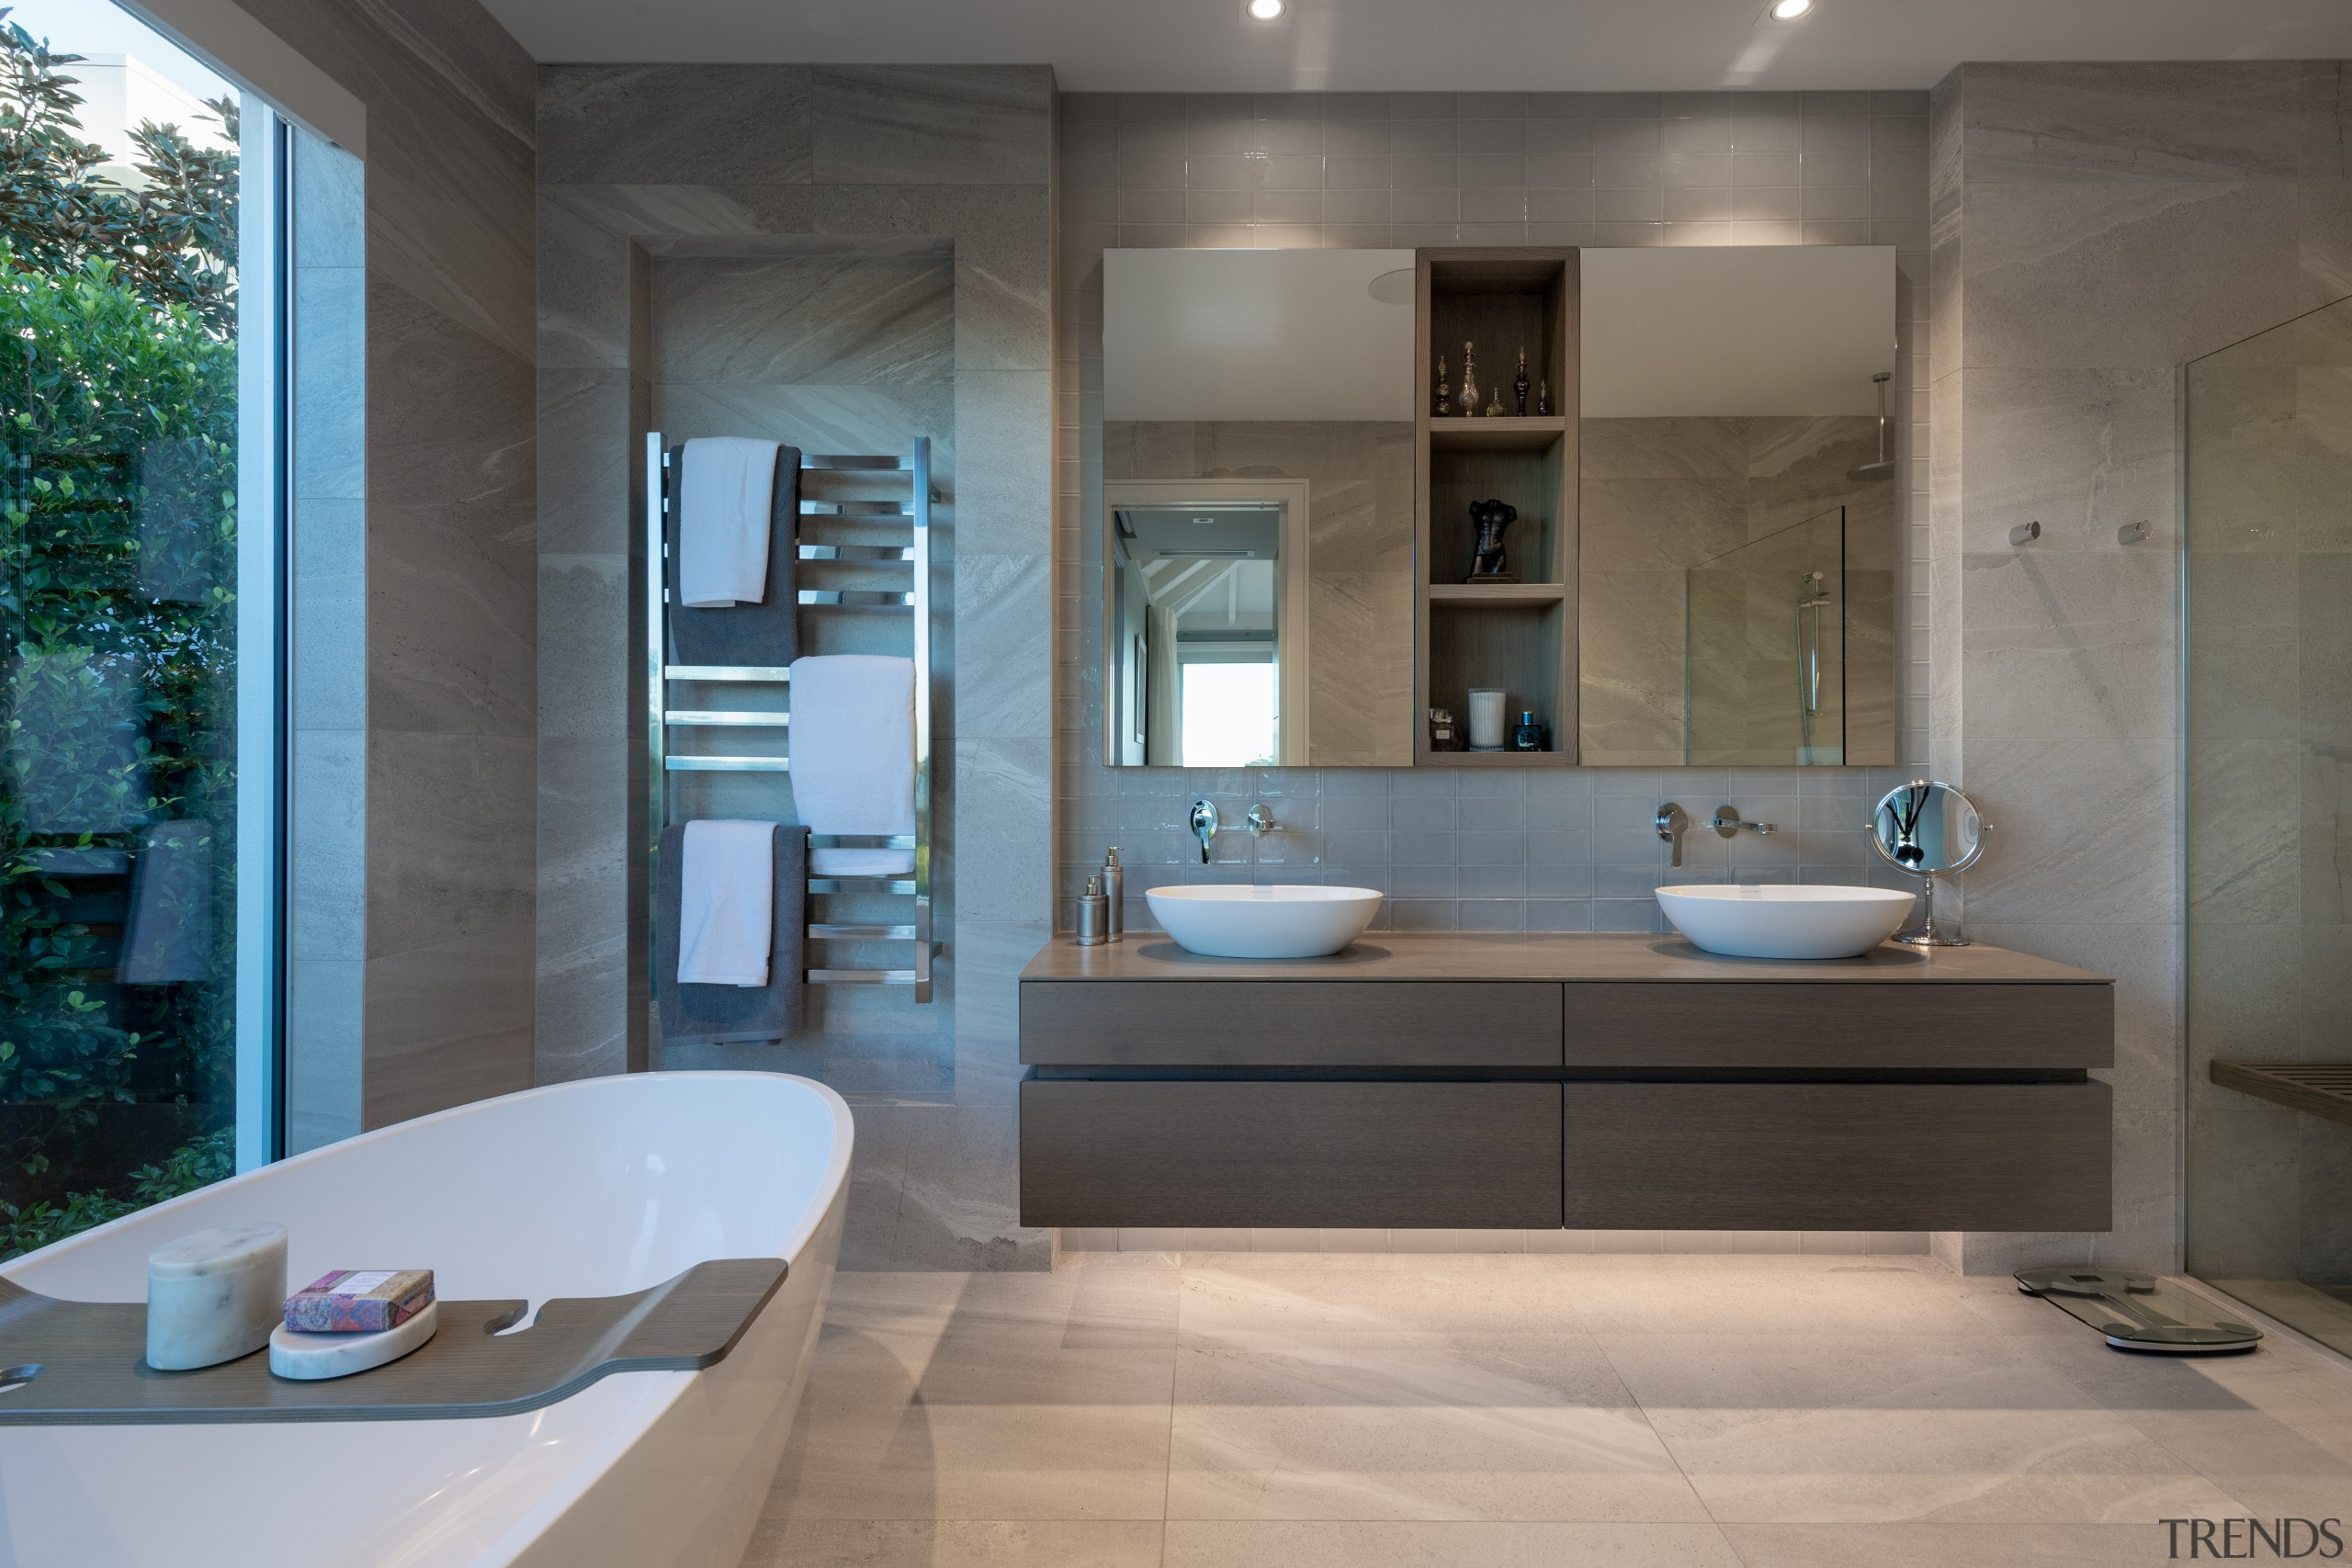 The main bathroom in this home by house